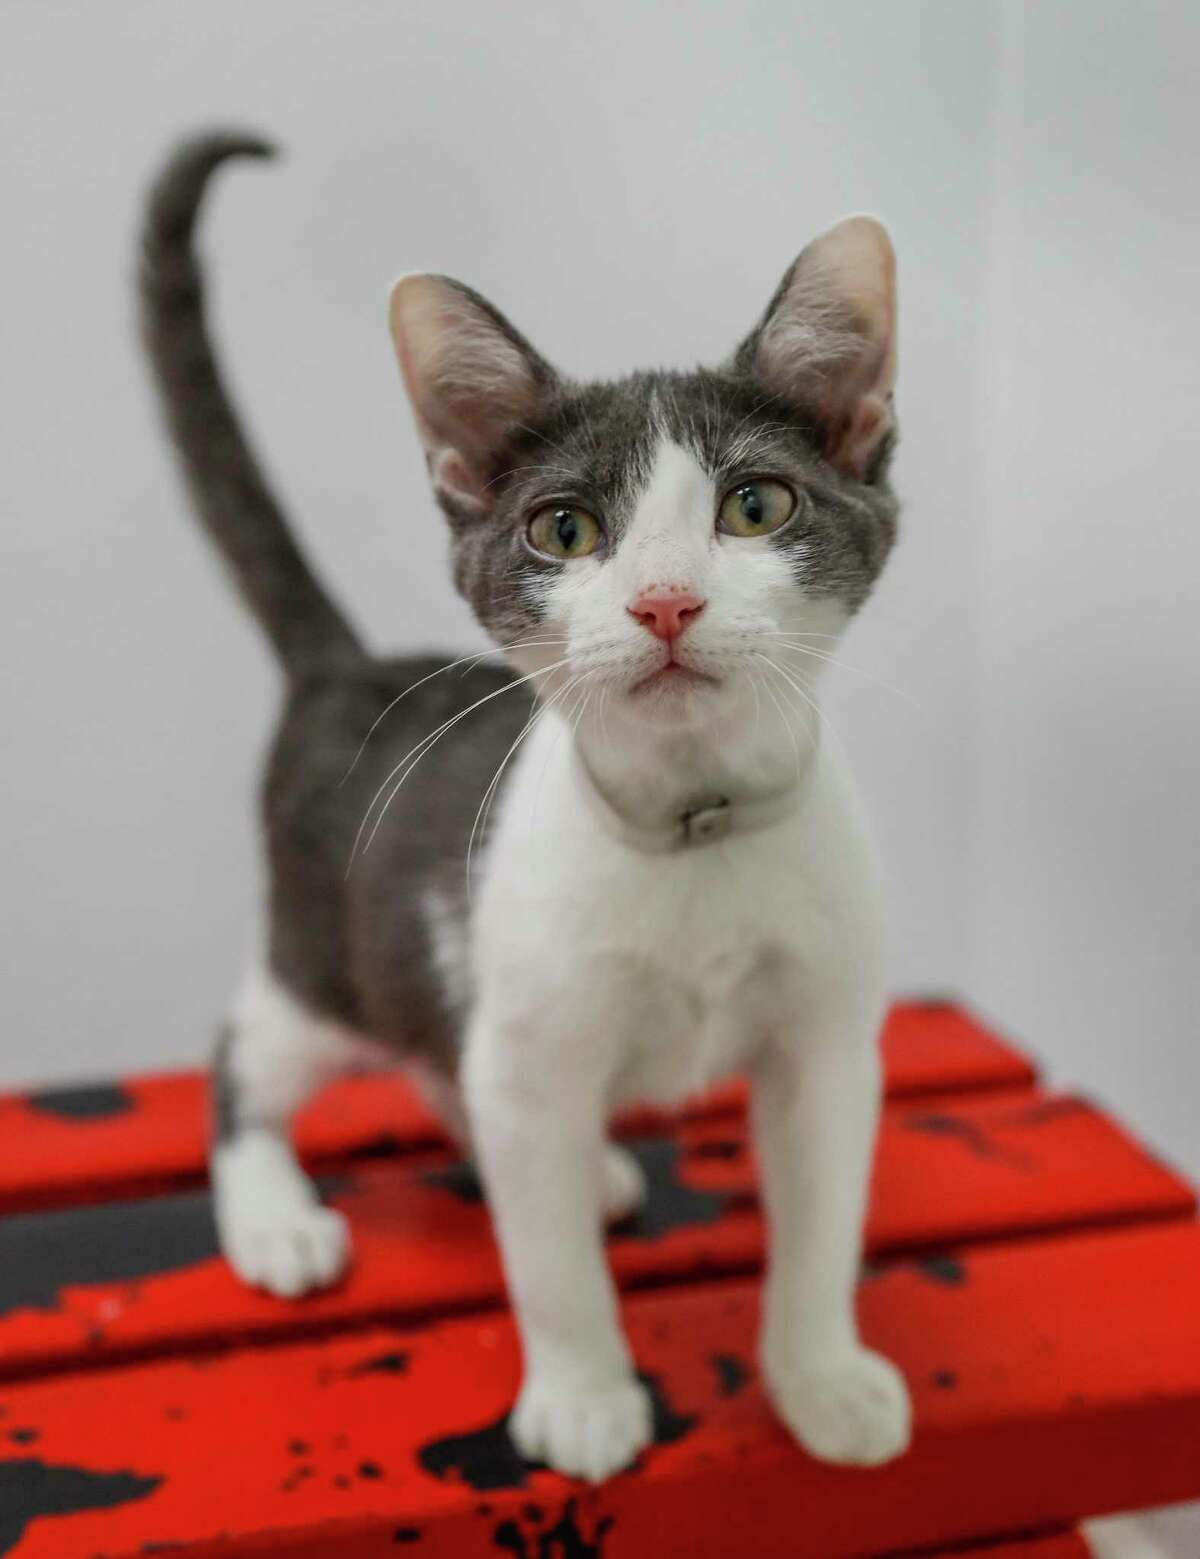 Thor is a 16-week-old, male, grey/white DSH kitten available for adoption at the Houston Humane Society, in Houston. (Animal ID: 41144838) Photographed Tuesday, July 9, 2019. Thor was brought in as a stray in May. He is very sweet, purrs like crazy, loves other cats, and loves to be cuddled.